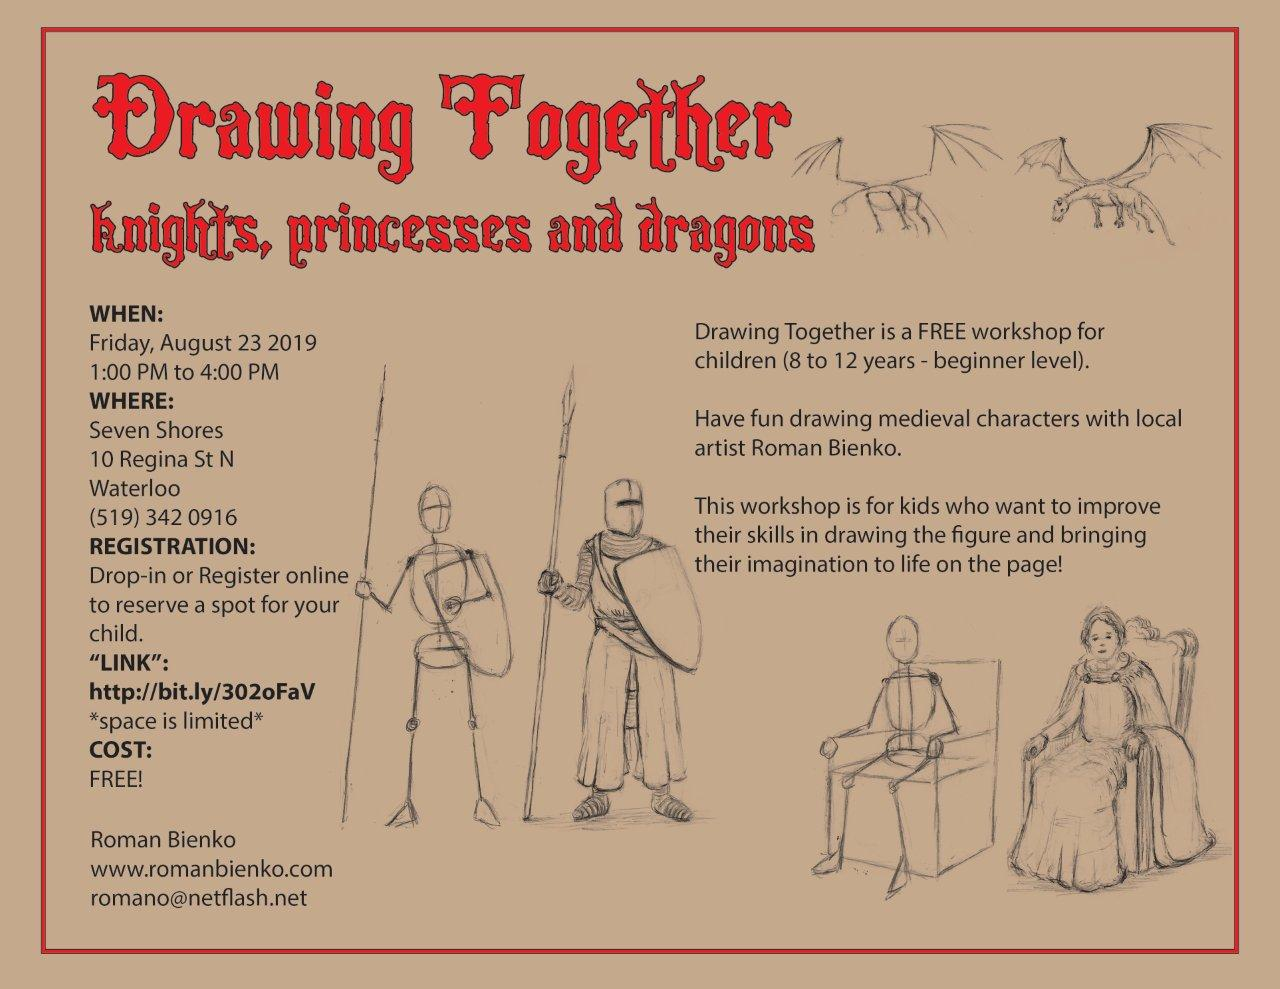 Drawing Together 2019 flyer (1).jpg